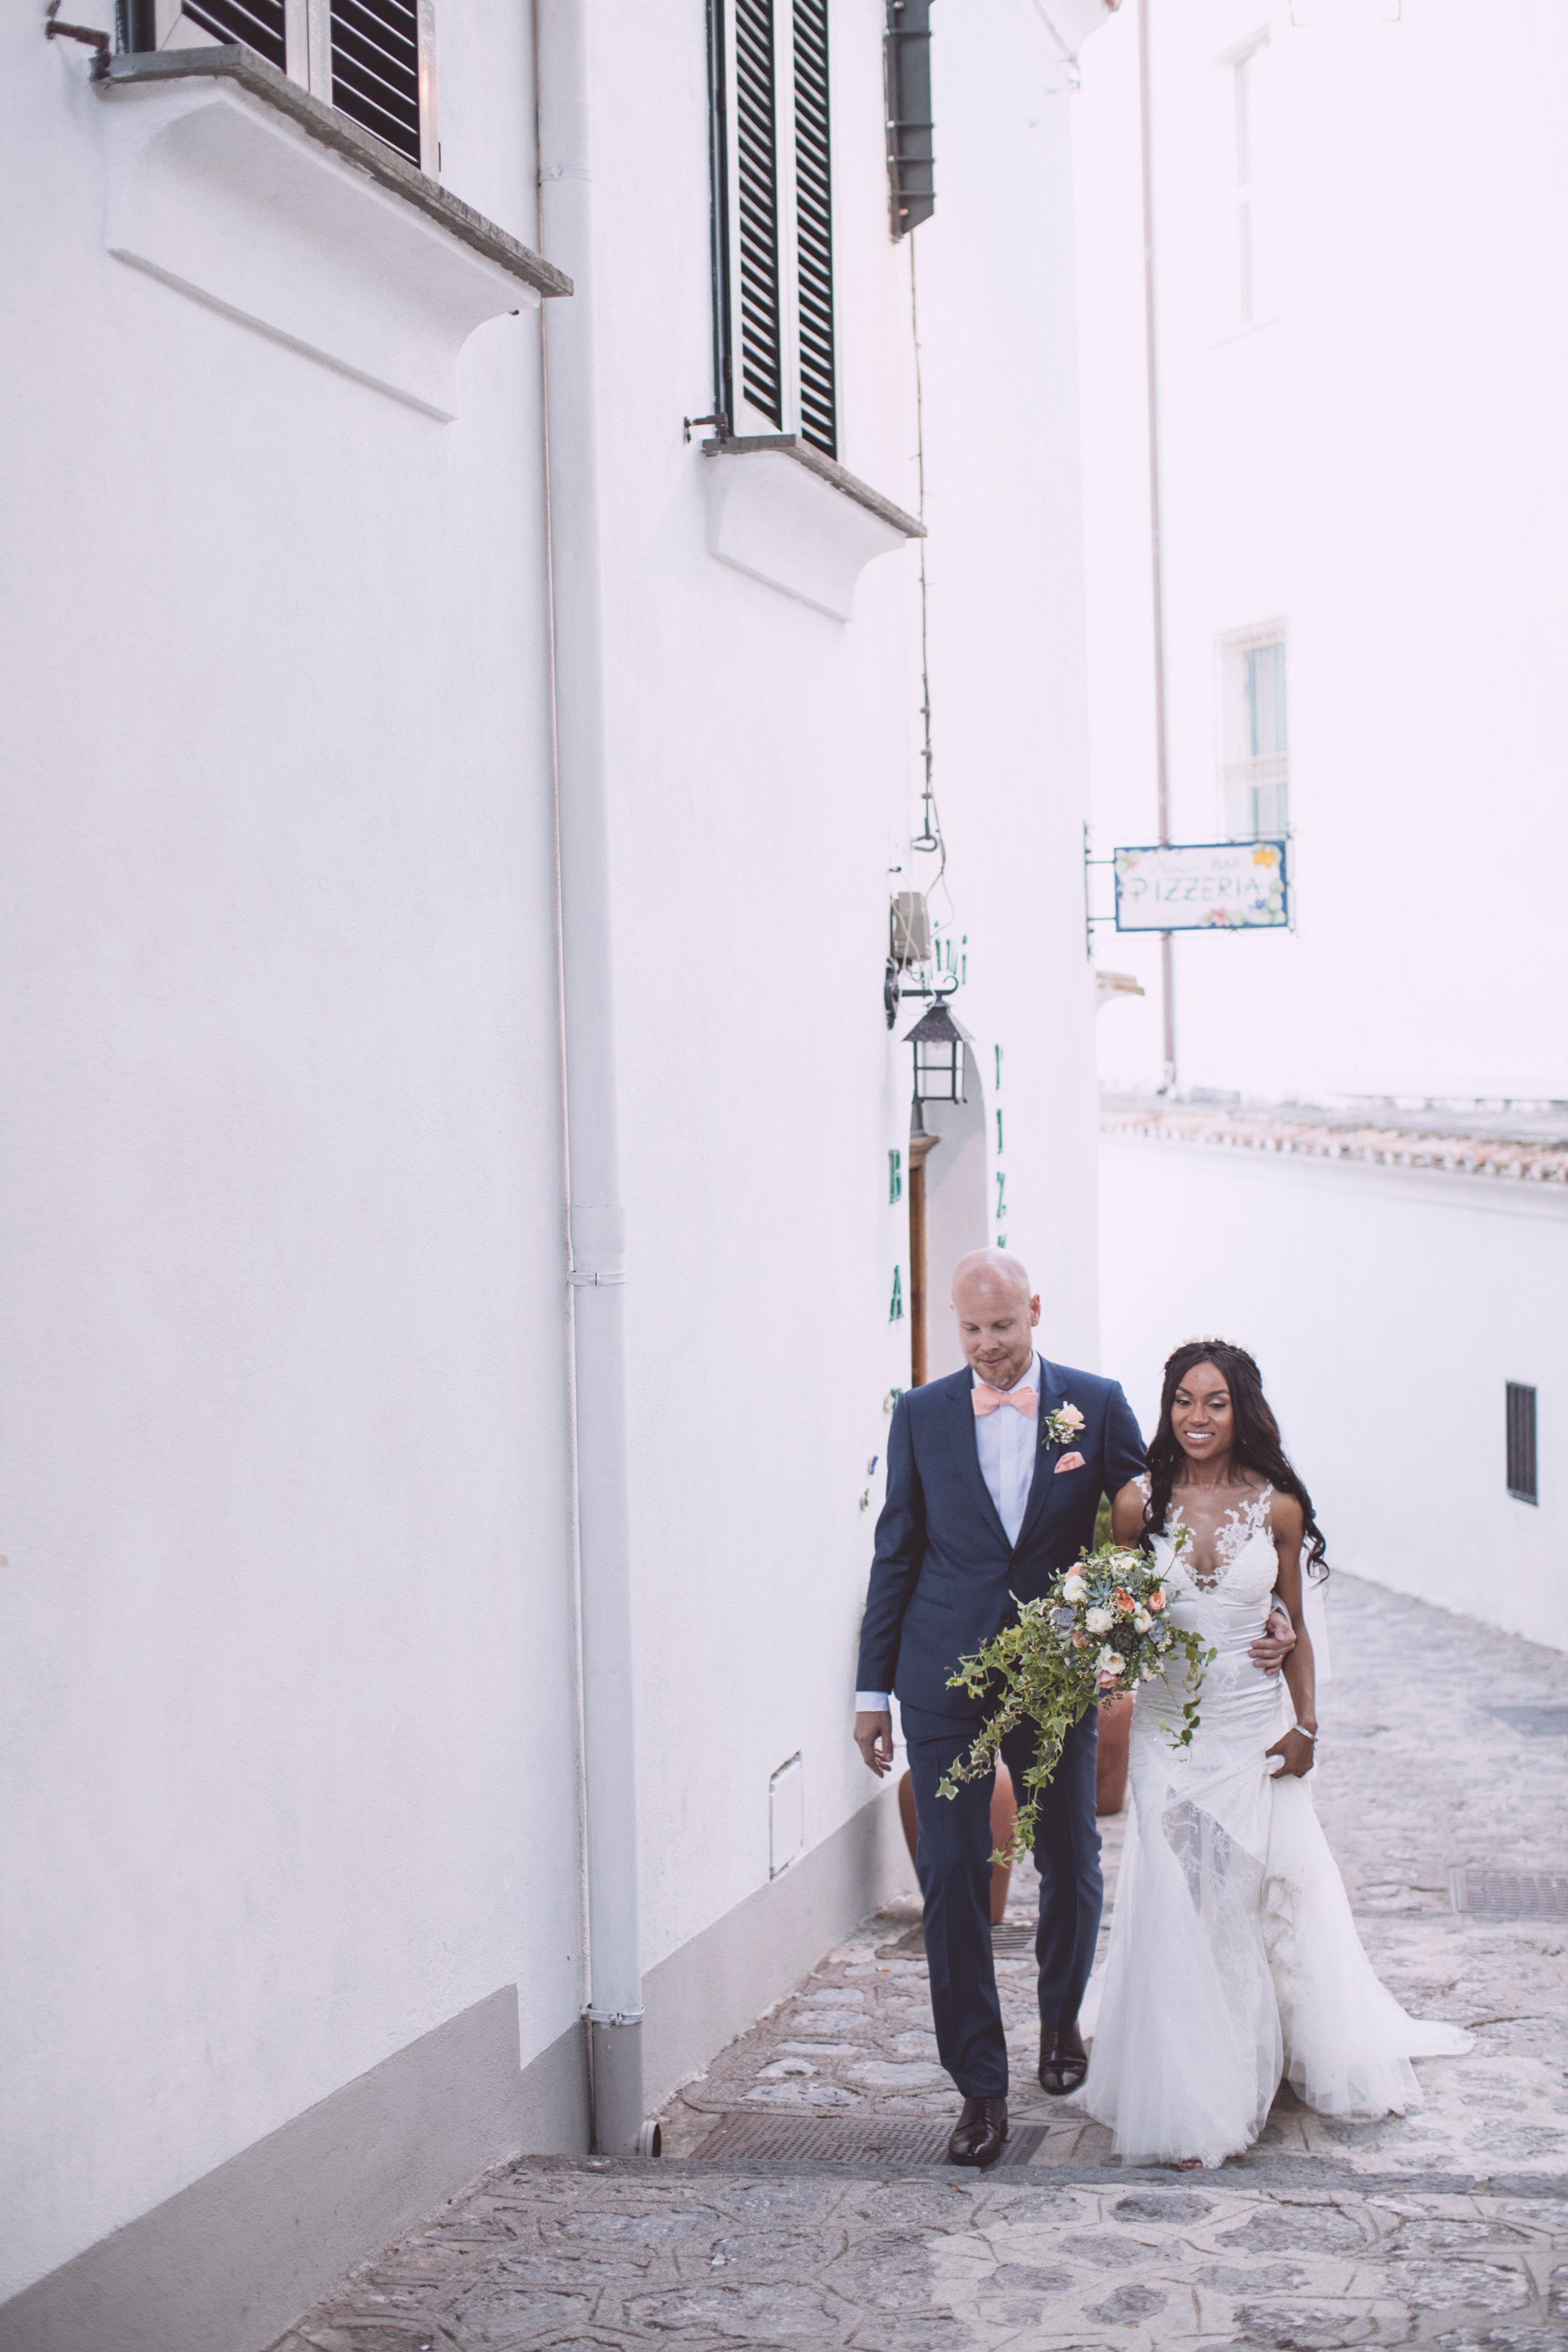 wedding in ravello bride and groom walking together